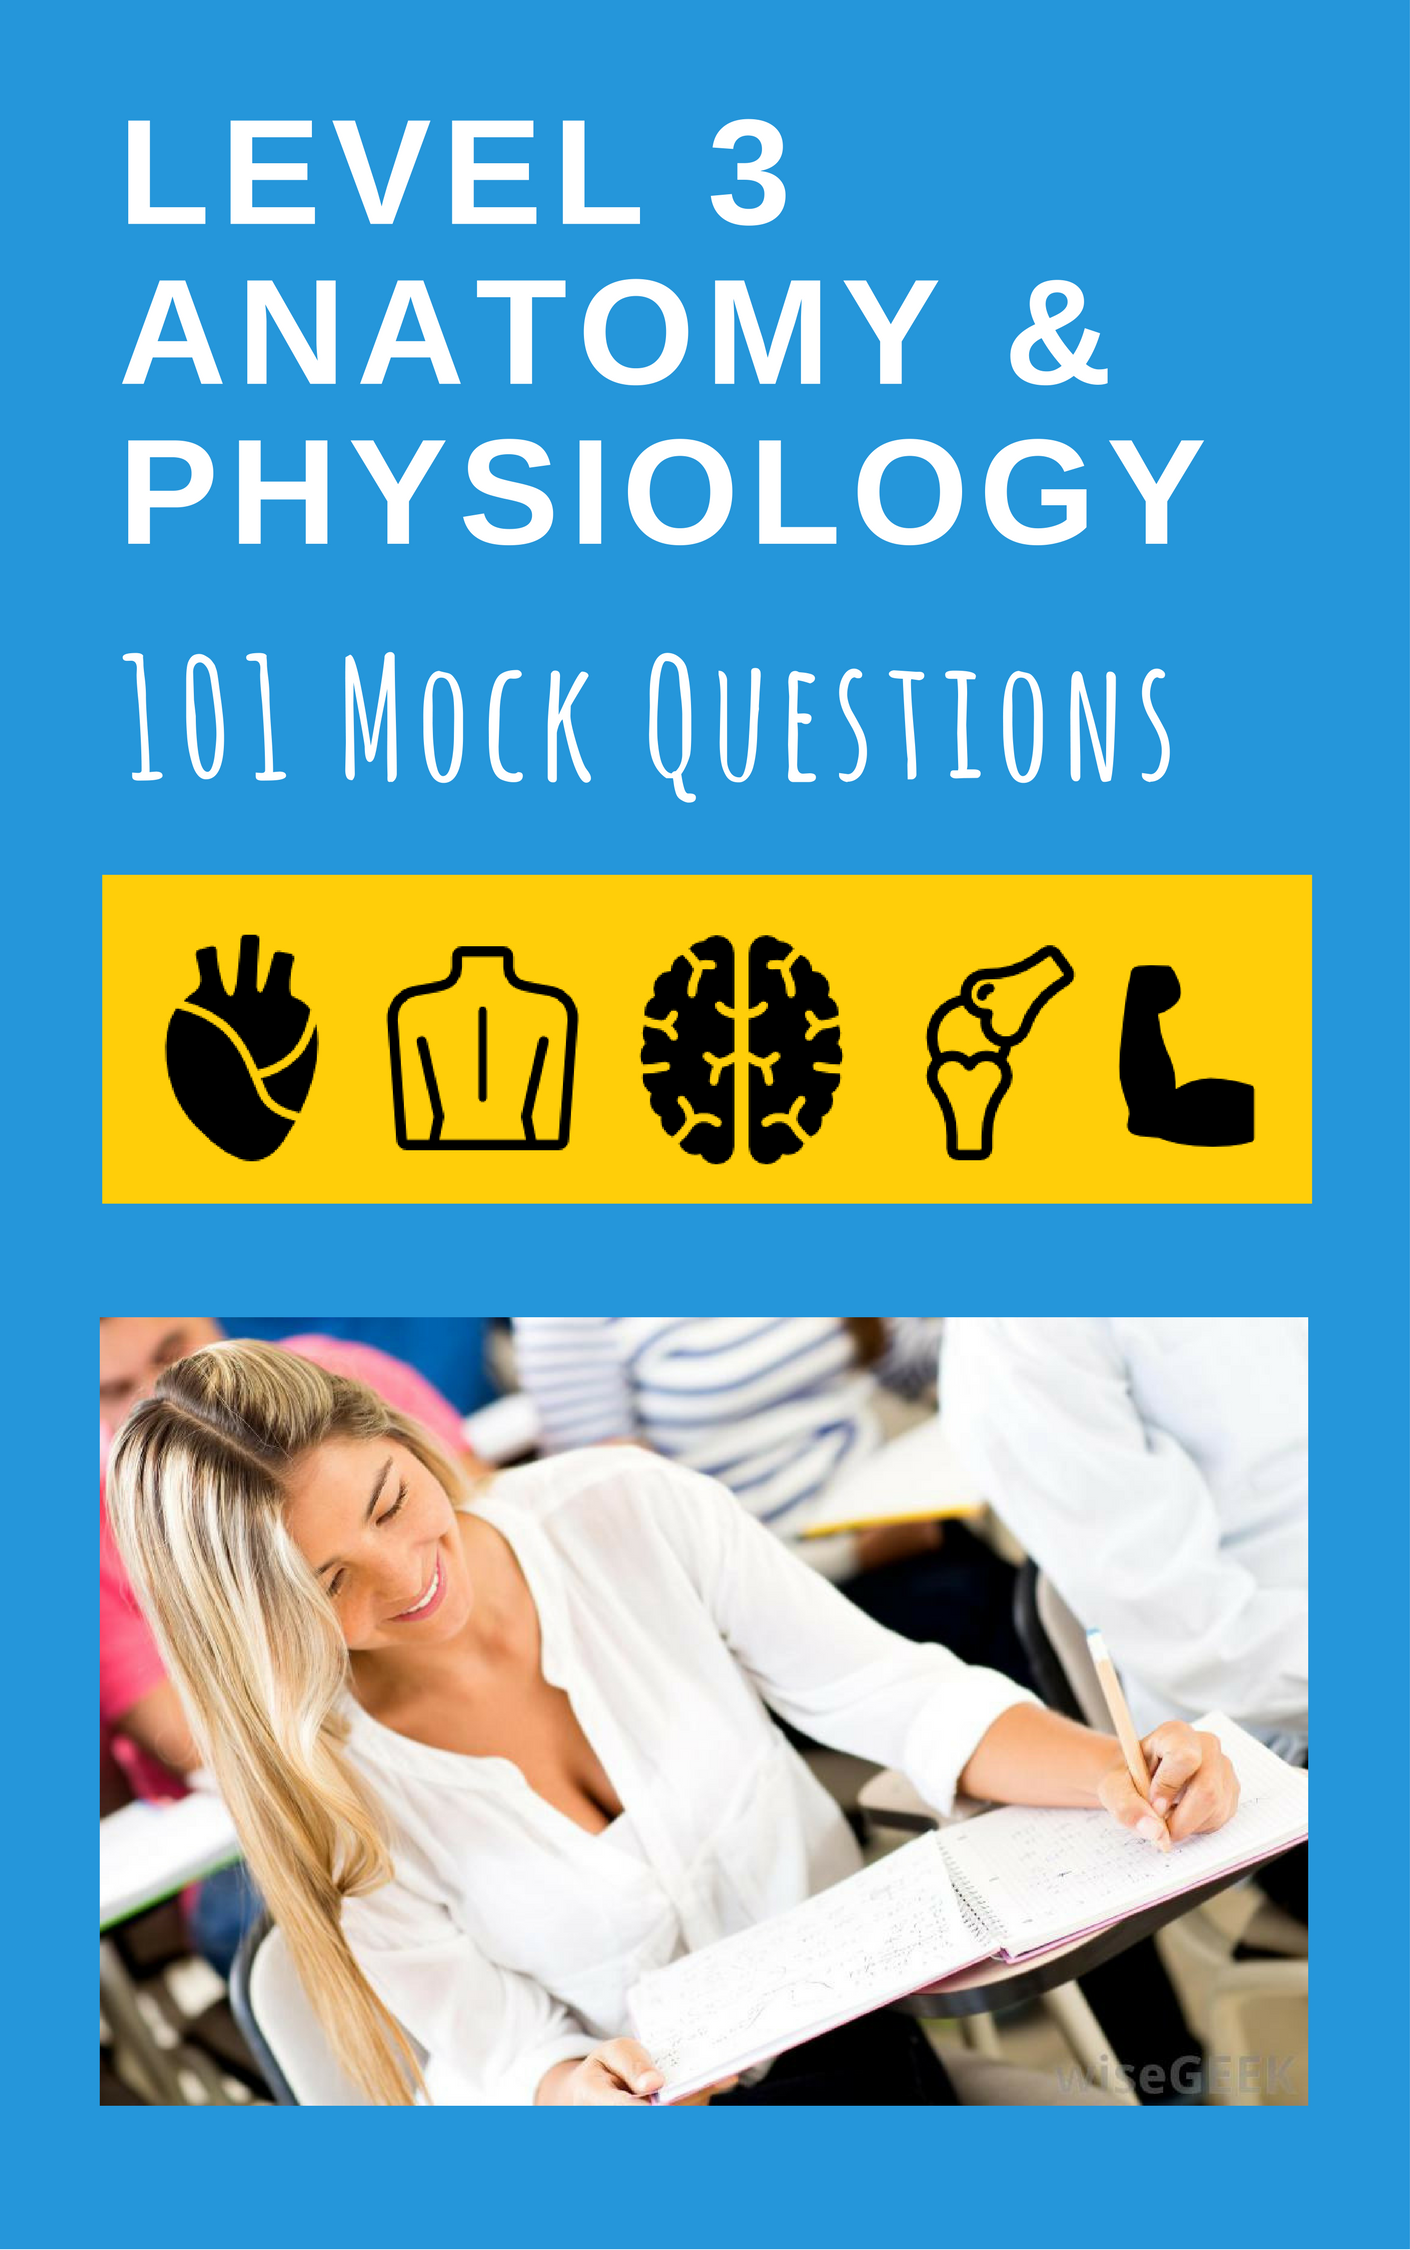 Level 3 Anatomy and Physiology Mock Questions